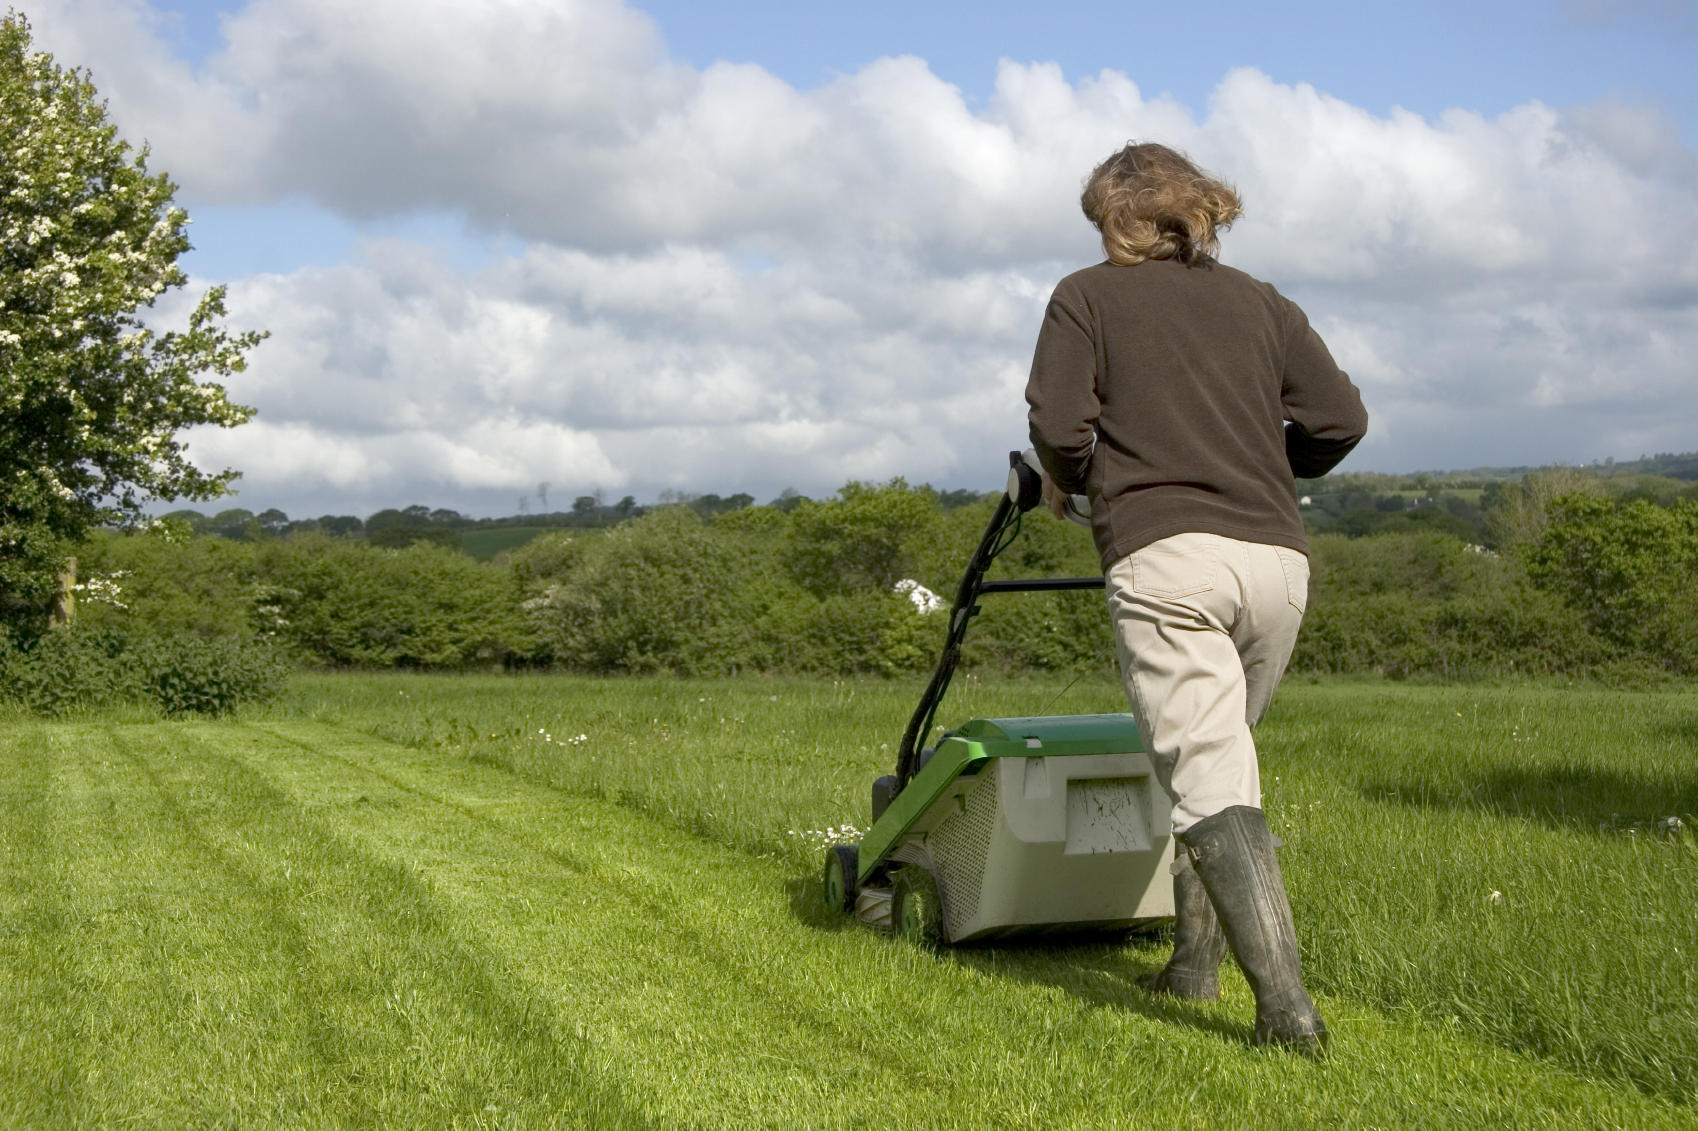 picture of a woman pushing a lawn mower